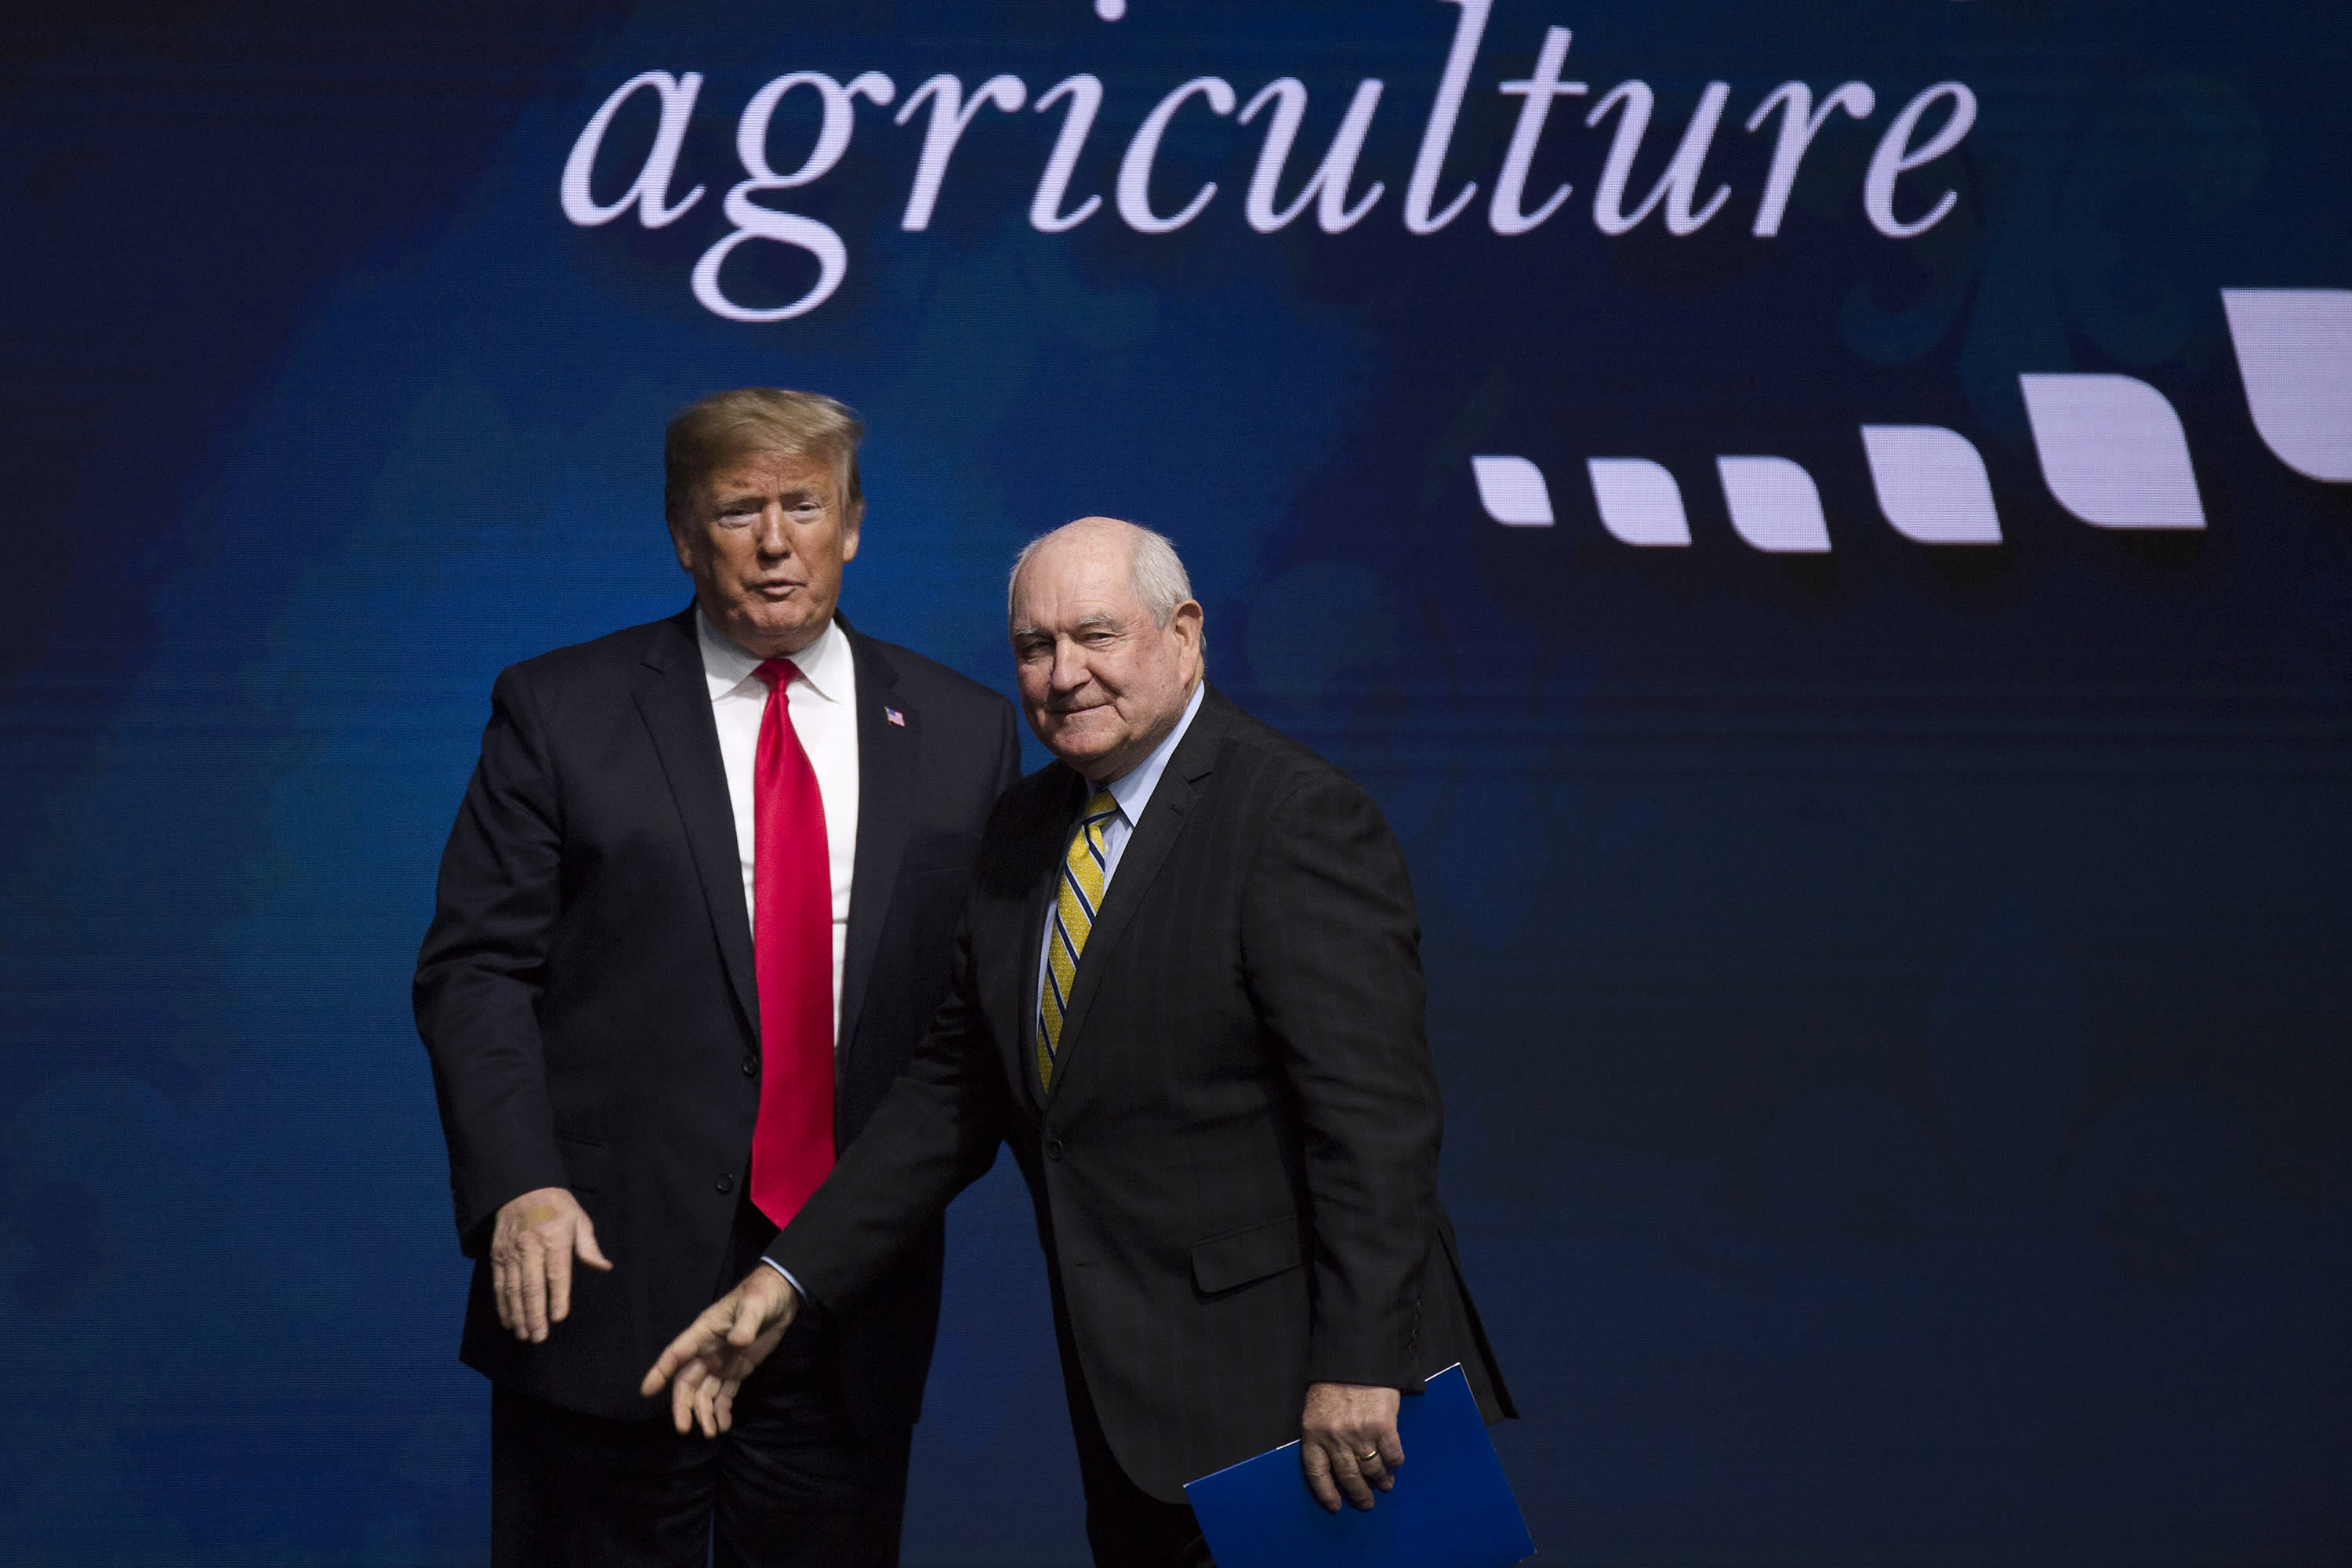 Agriculture Sec. Perdue: Trump wants an enforceable, reliable China trade deal